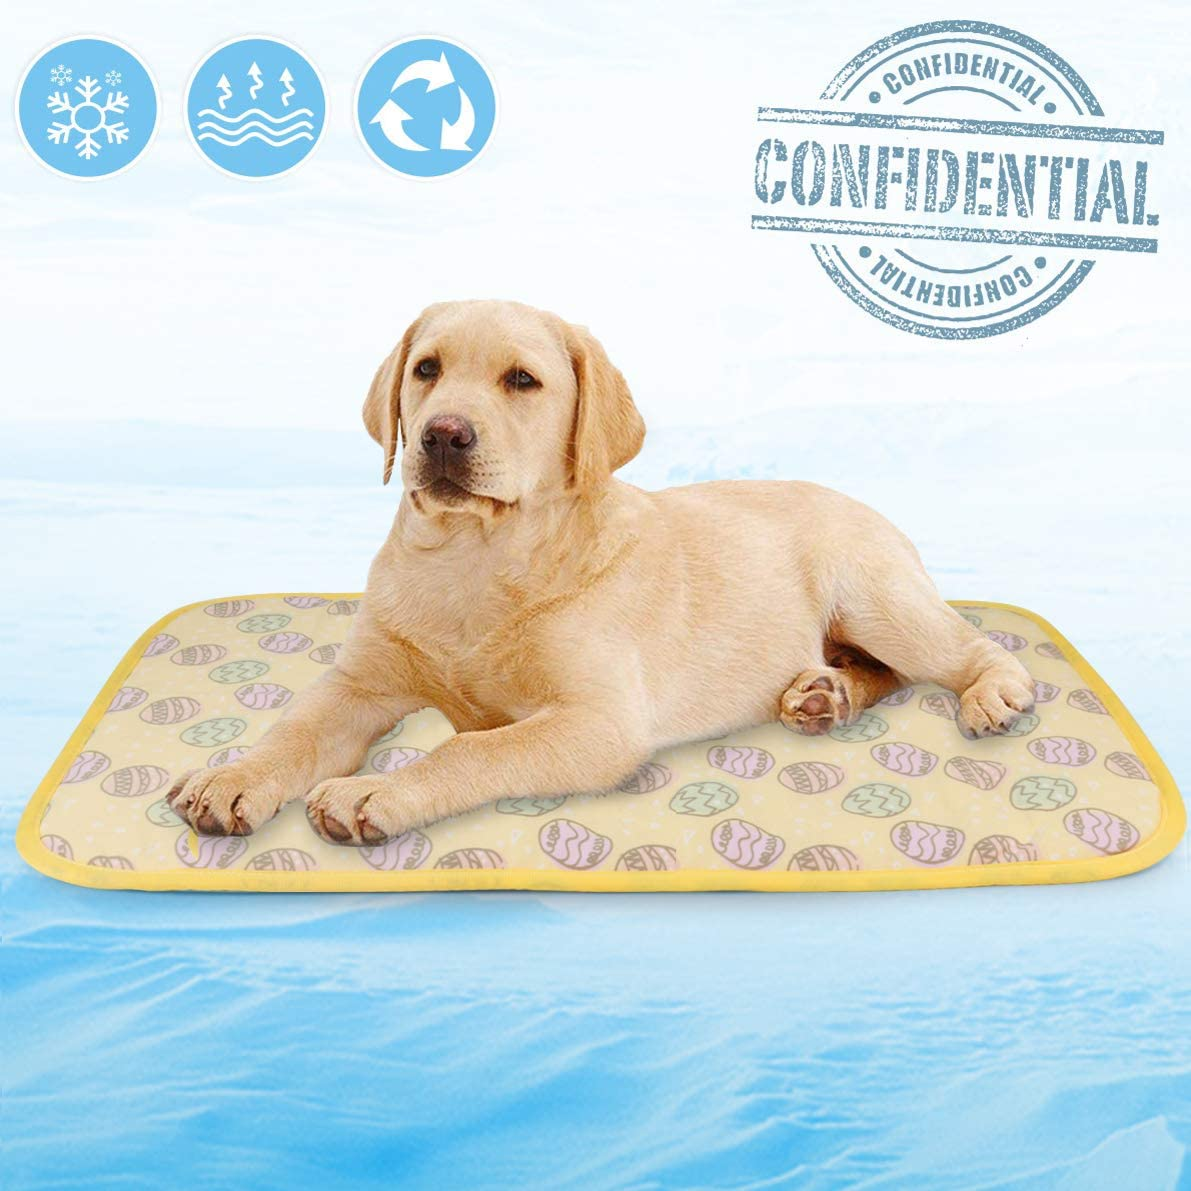 Idepet Dog Cooling Mat, Pet Cooling Pad Mat Keep Your Pet Cool Reduce Joint Pain Fit for Dog Cat Rabbit Hamster Self Cooling Mat